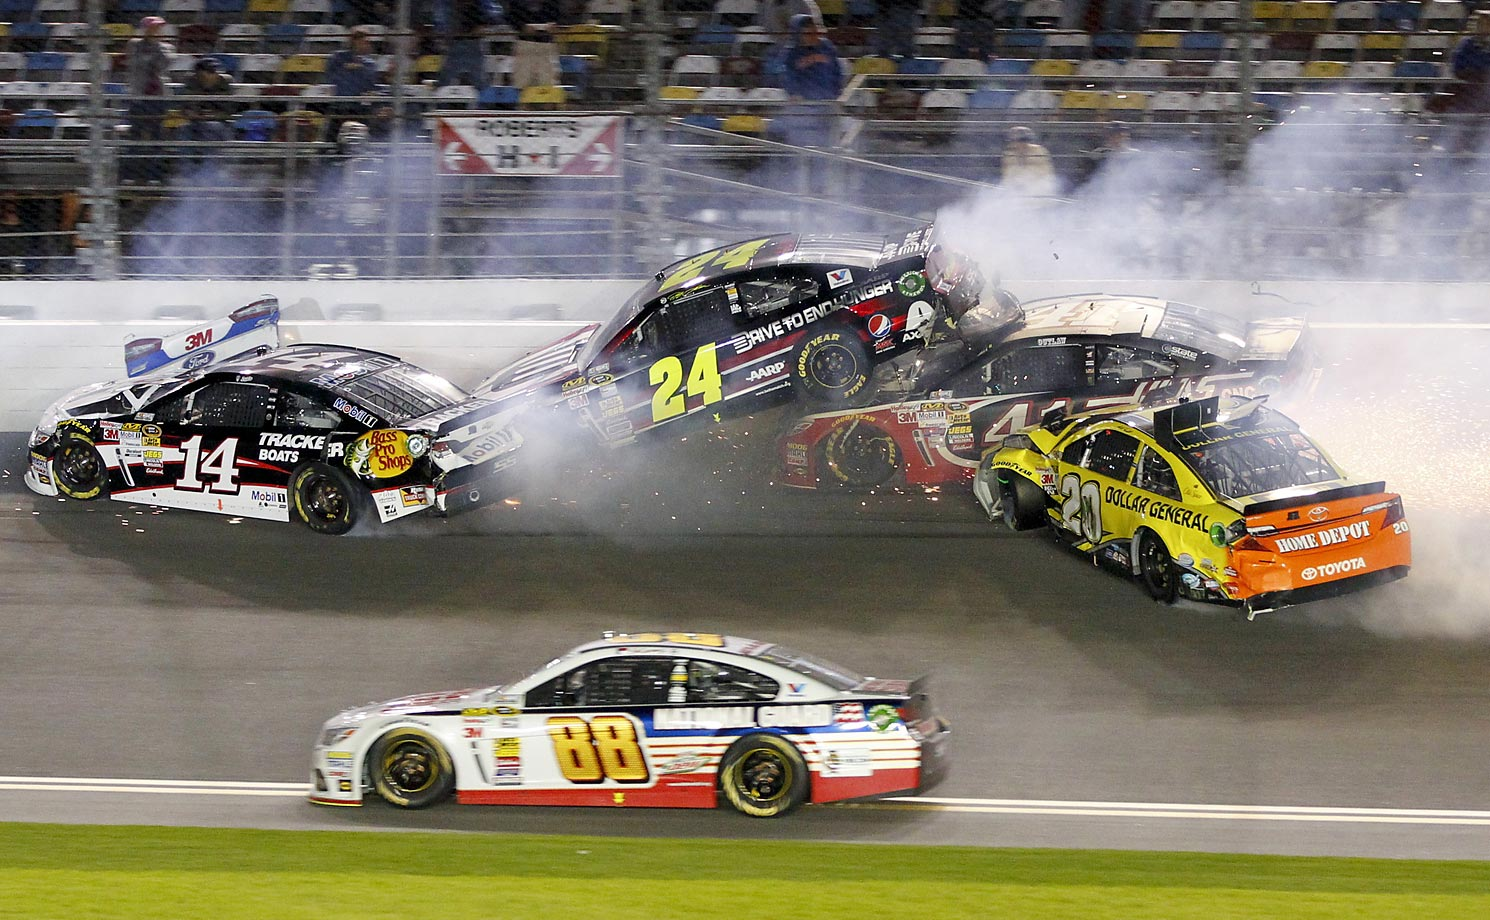 Tony Stewart, Jeff Gordon, Kurt Busch, and Matt Kenseth wreck on the front stretch as Dale Earnhardt Jr. goes low to avoid the crash during the NASCAR Sprint Unlimited auto race at Daytona International Speedway in Daytona Beach, Fla.